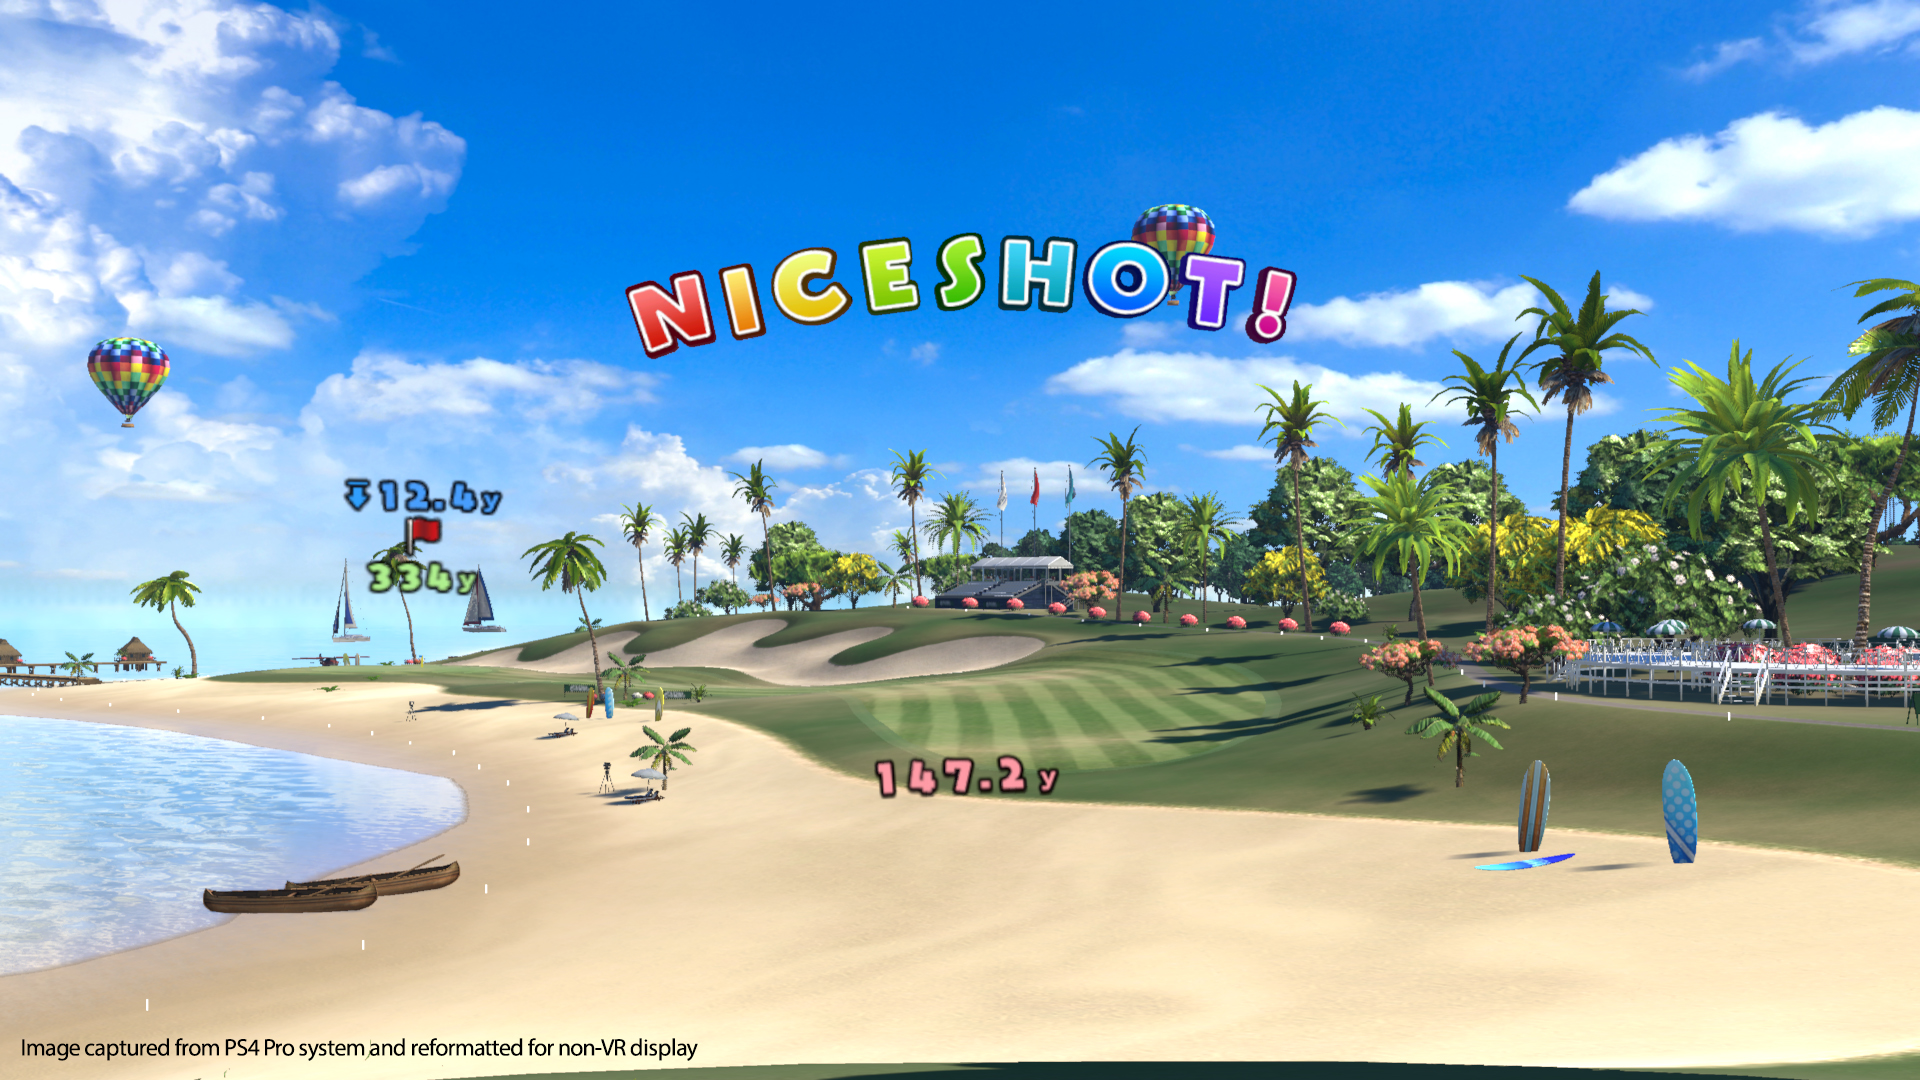 EverybodysGolfVR_Course_2_Nice_Shot_UI_1557501816.jpg